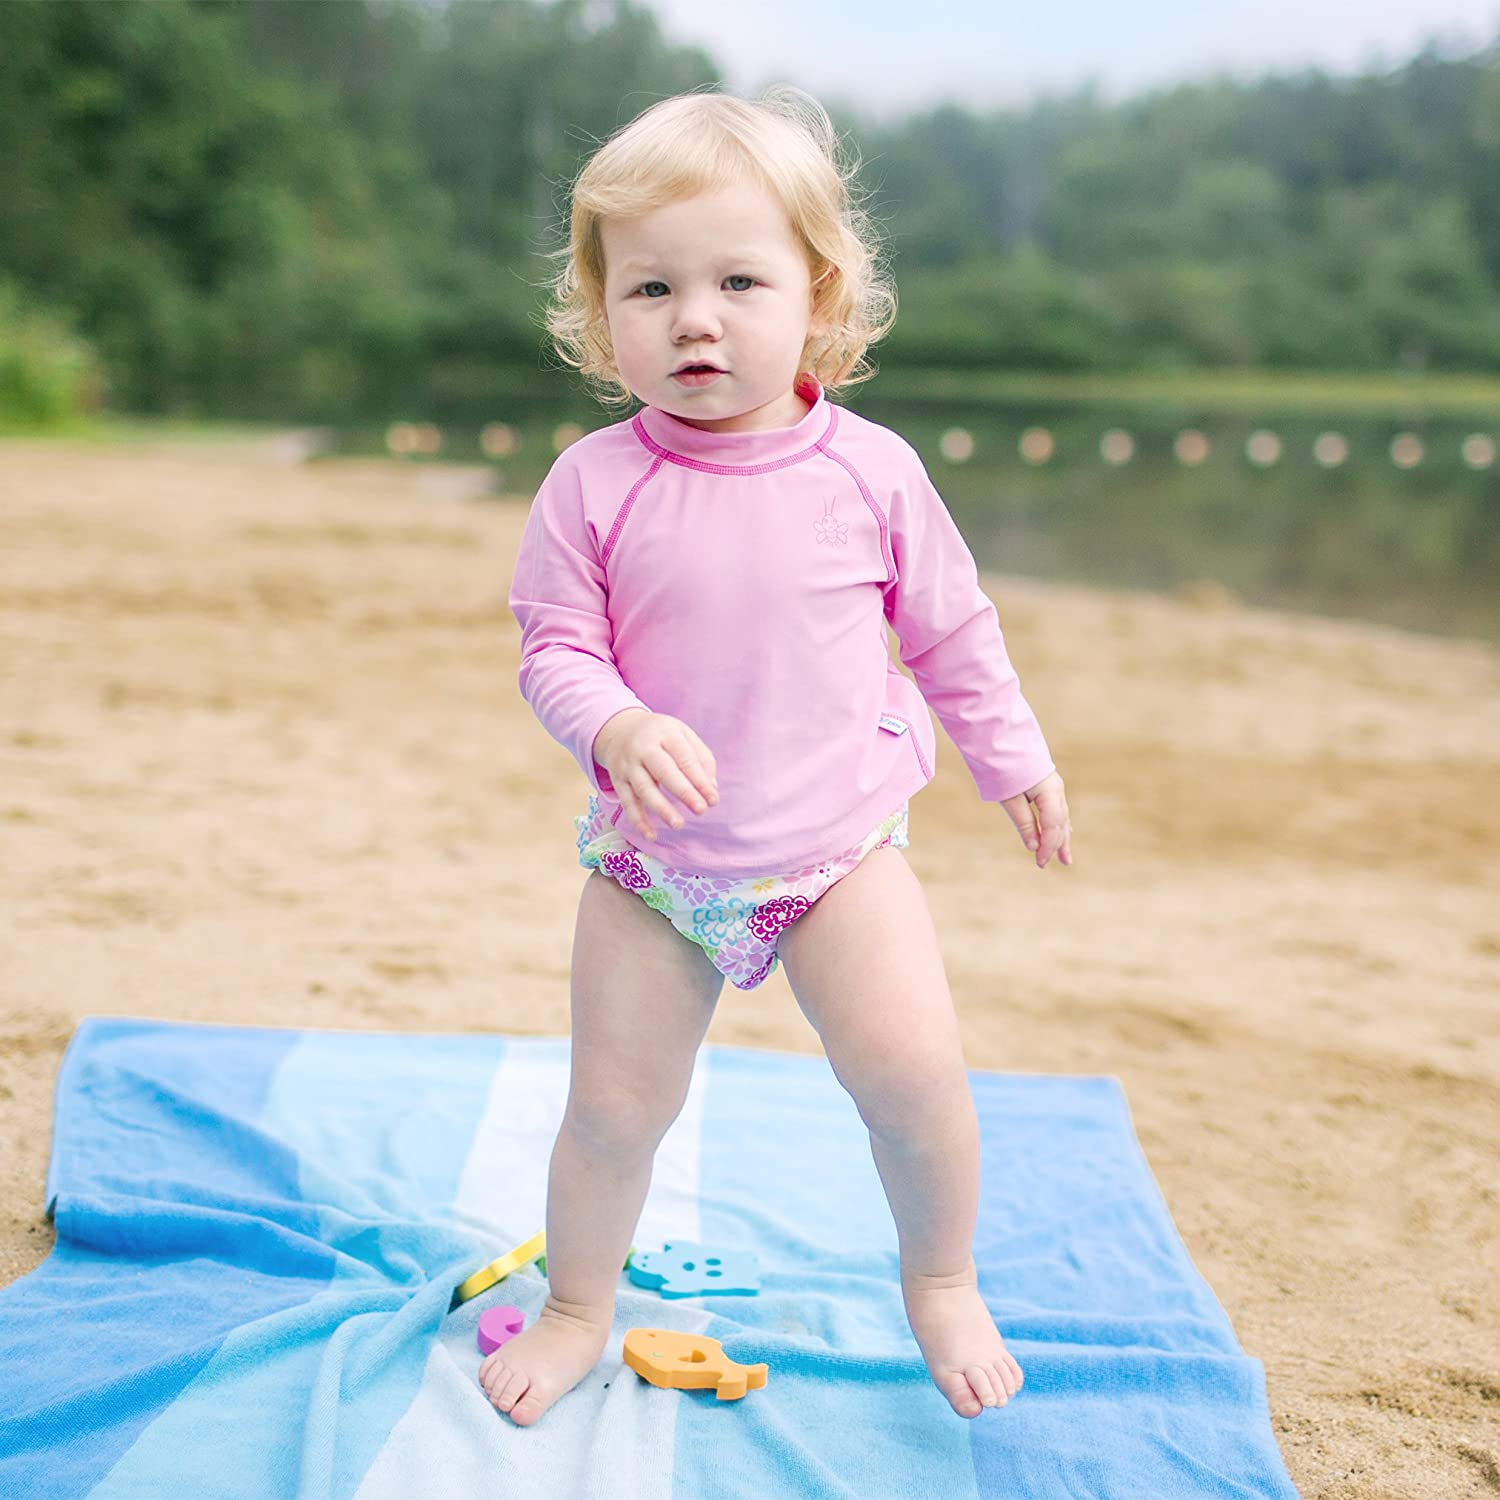 Long Sleeve Rashguard Shirt sun protection/—wet or dry,Light Pink Classic,6 months i play All-day UPF 50